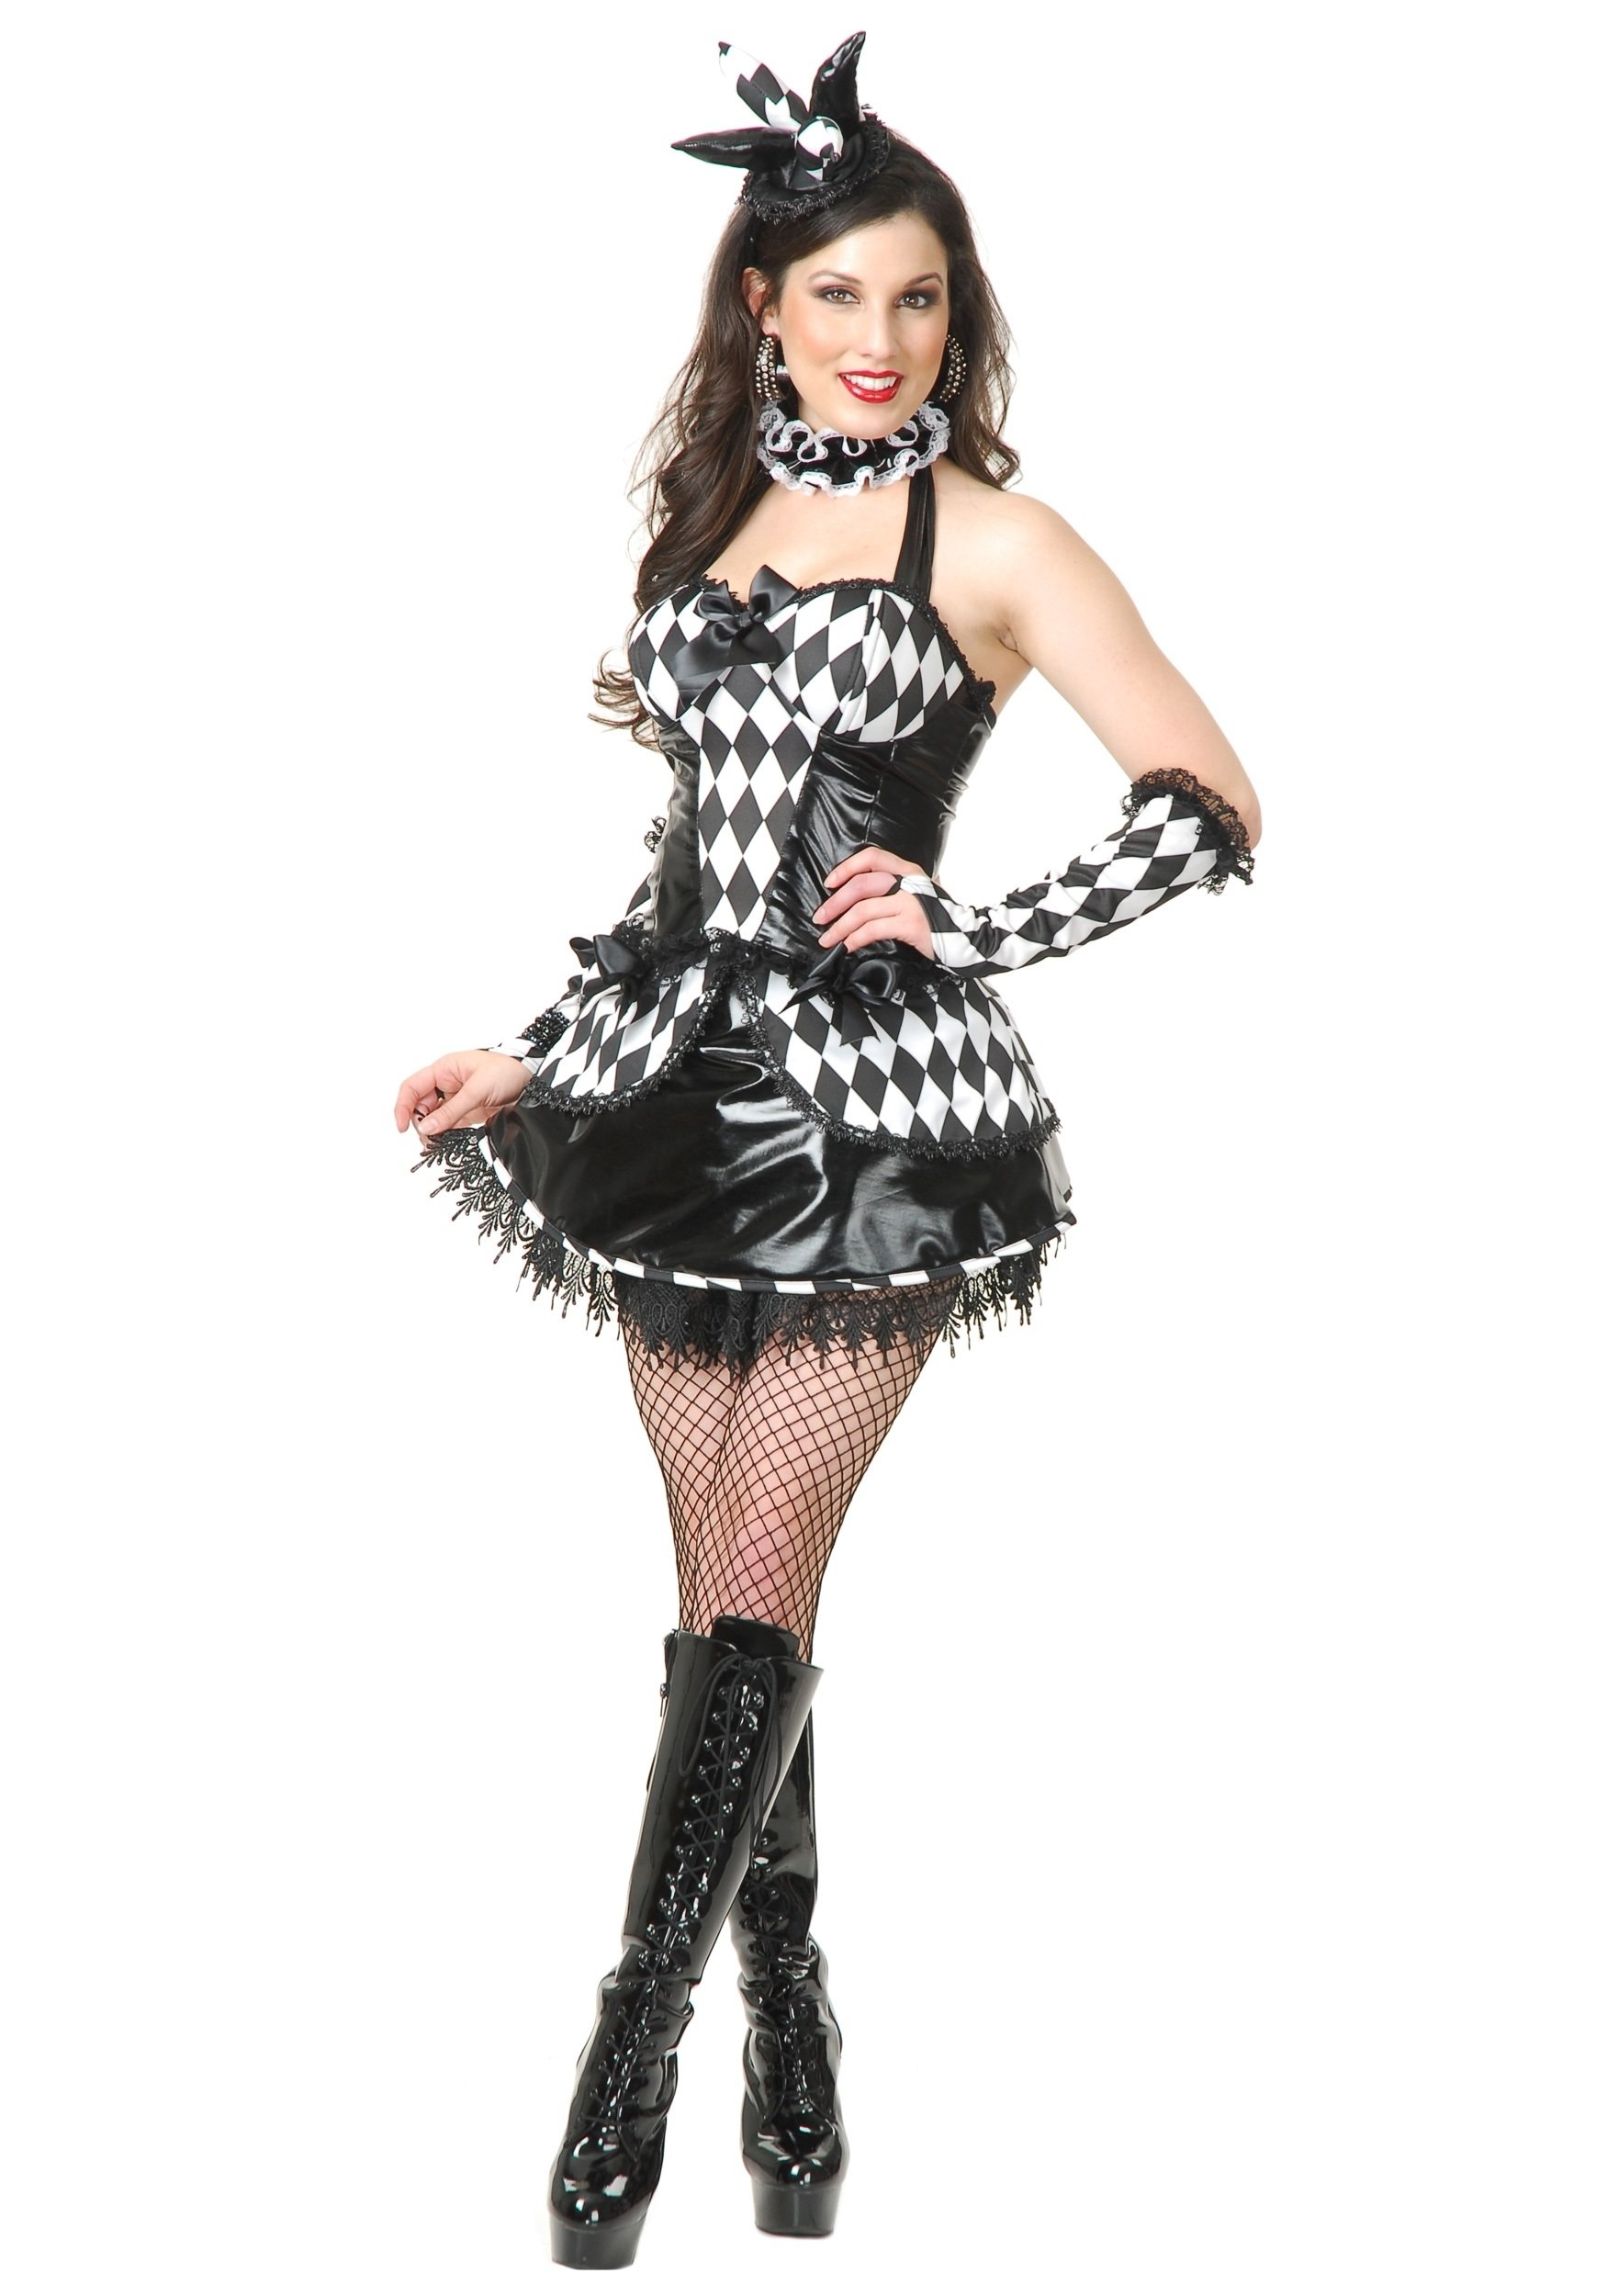 10 Best Black And White Costume Ideas sexy black and white jester costume sexy womens clown costume ideas